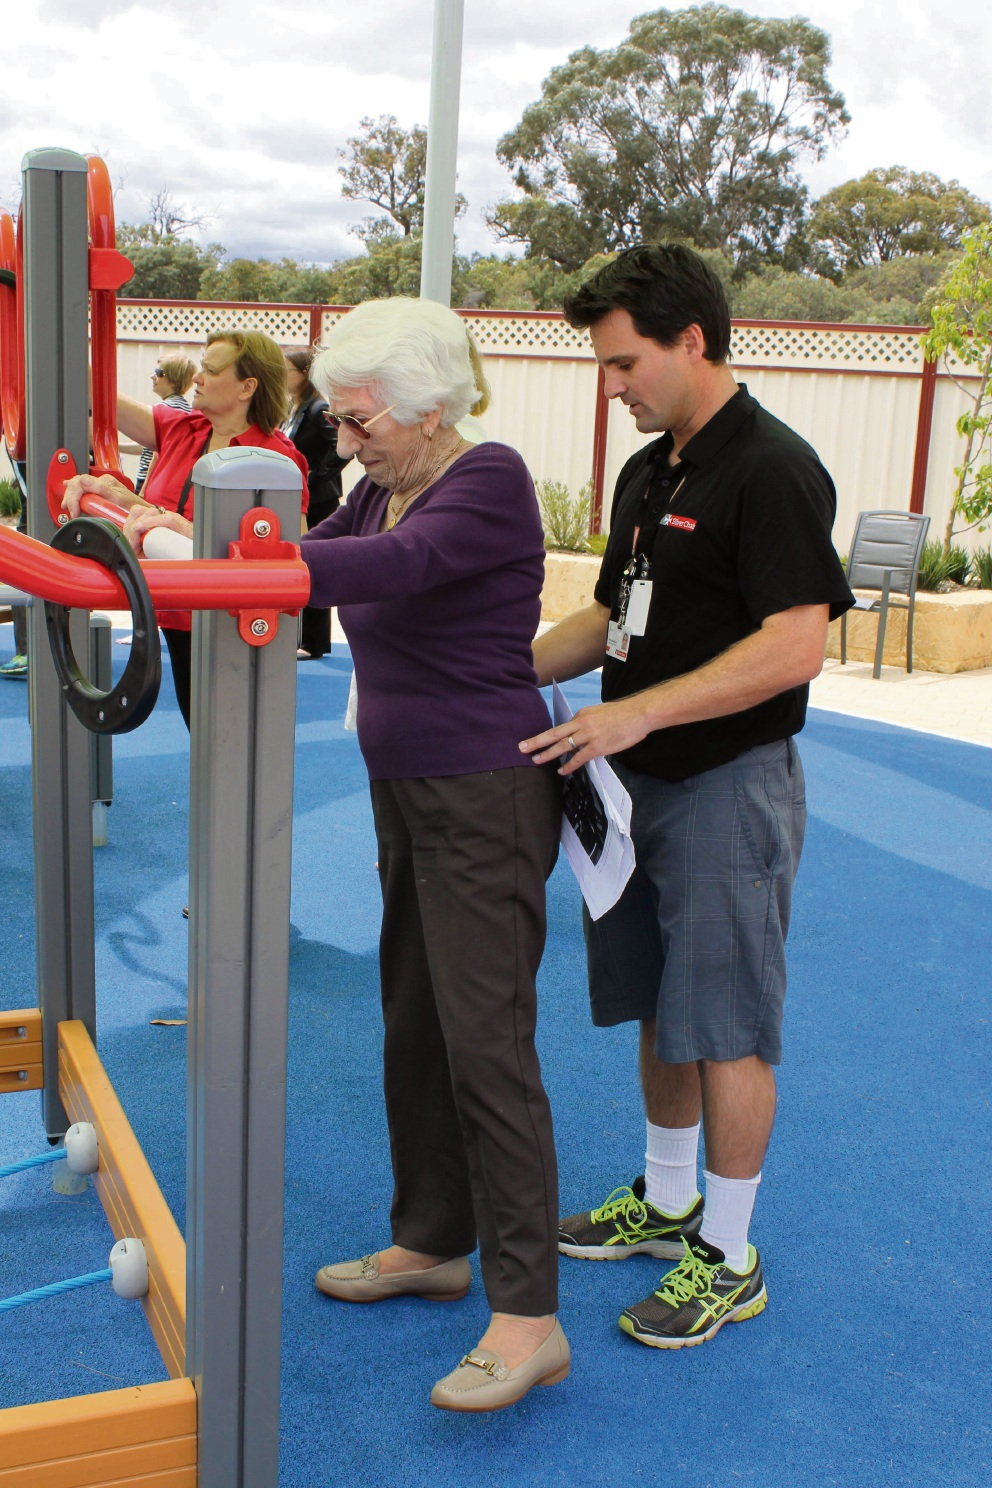 Seniors' exercise park in Mandurah a first in WA